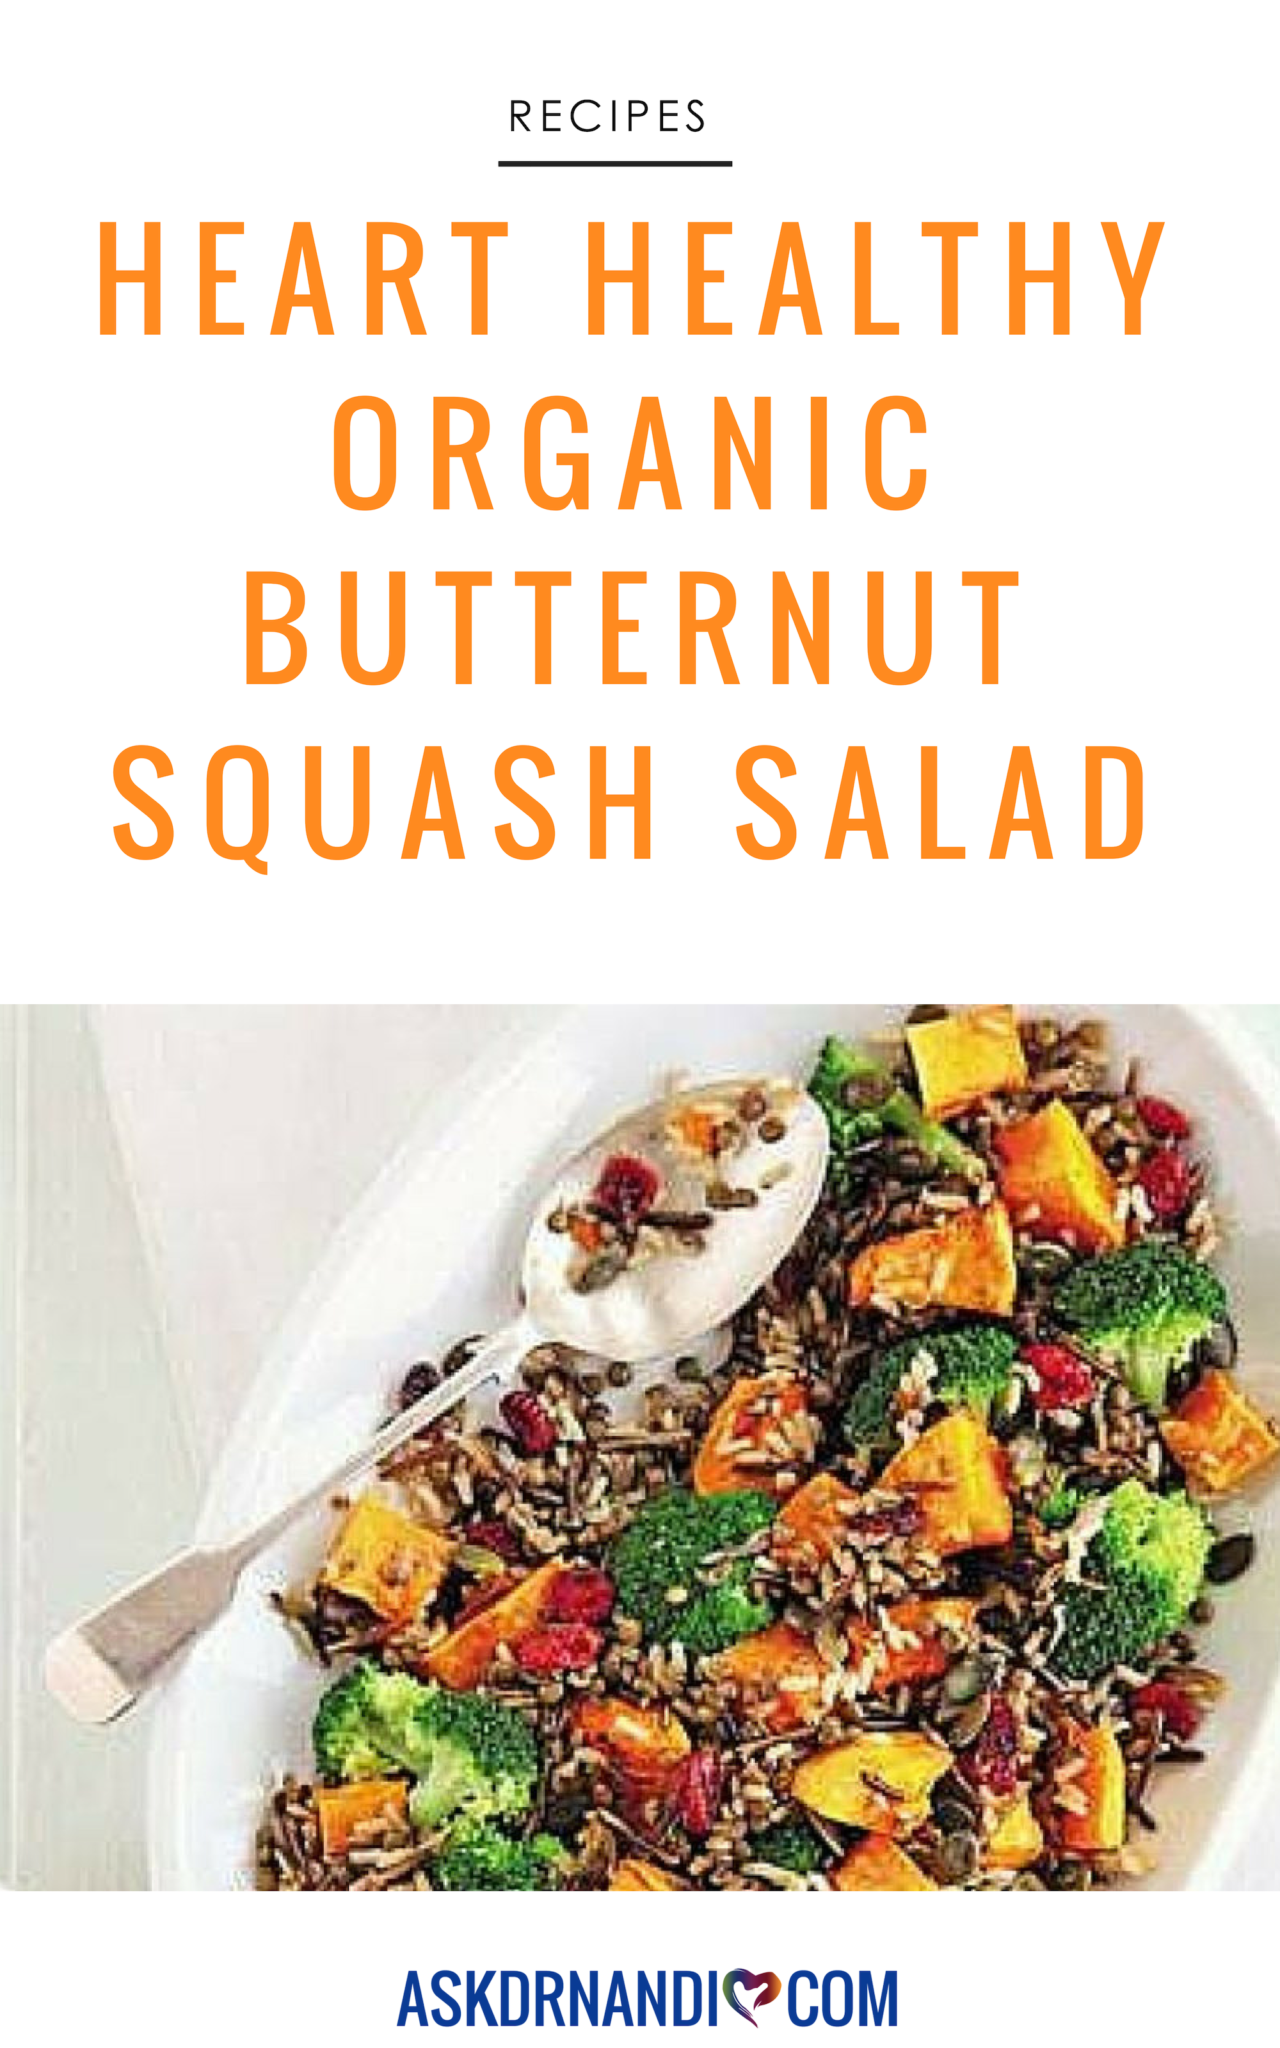 Dr. Nandi shares this healthy and filling Organic Butternut Squash Salad recipe